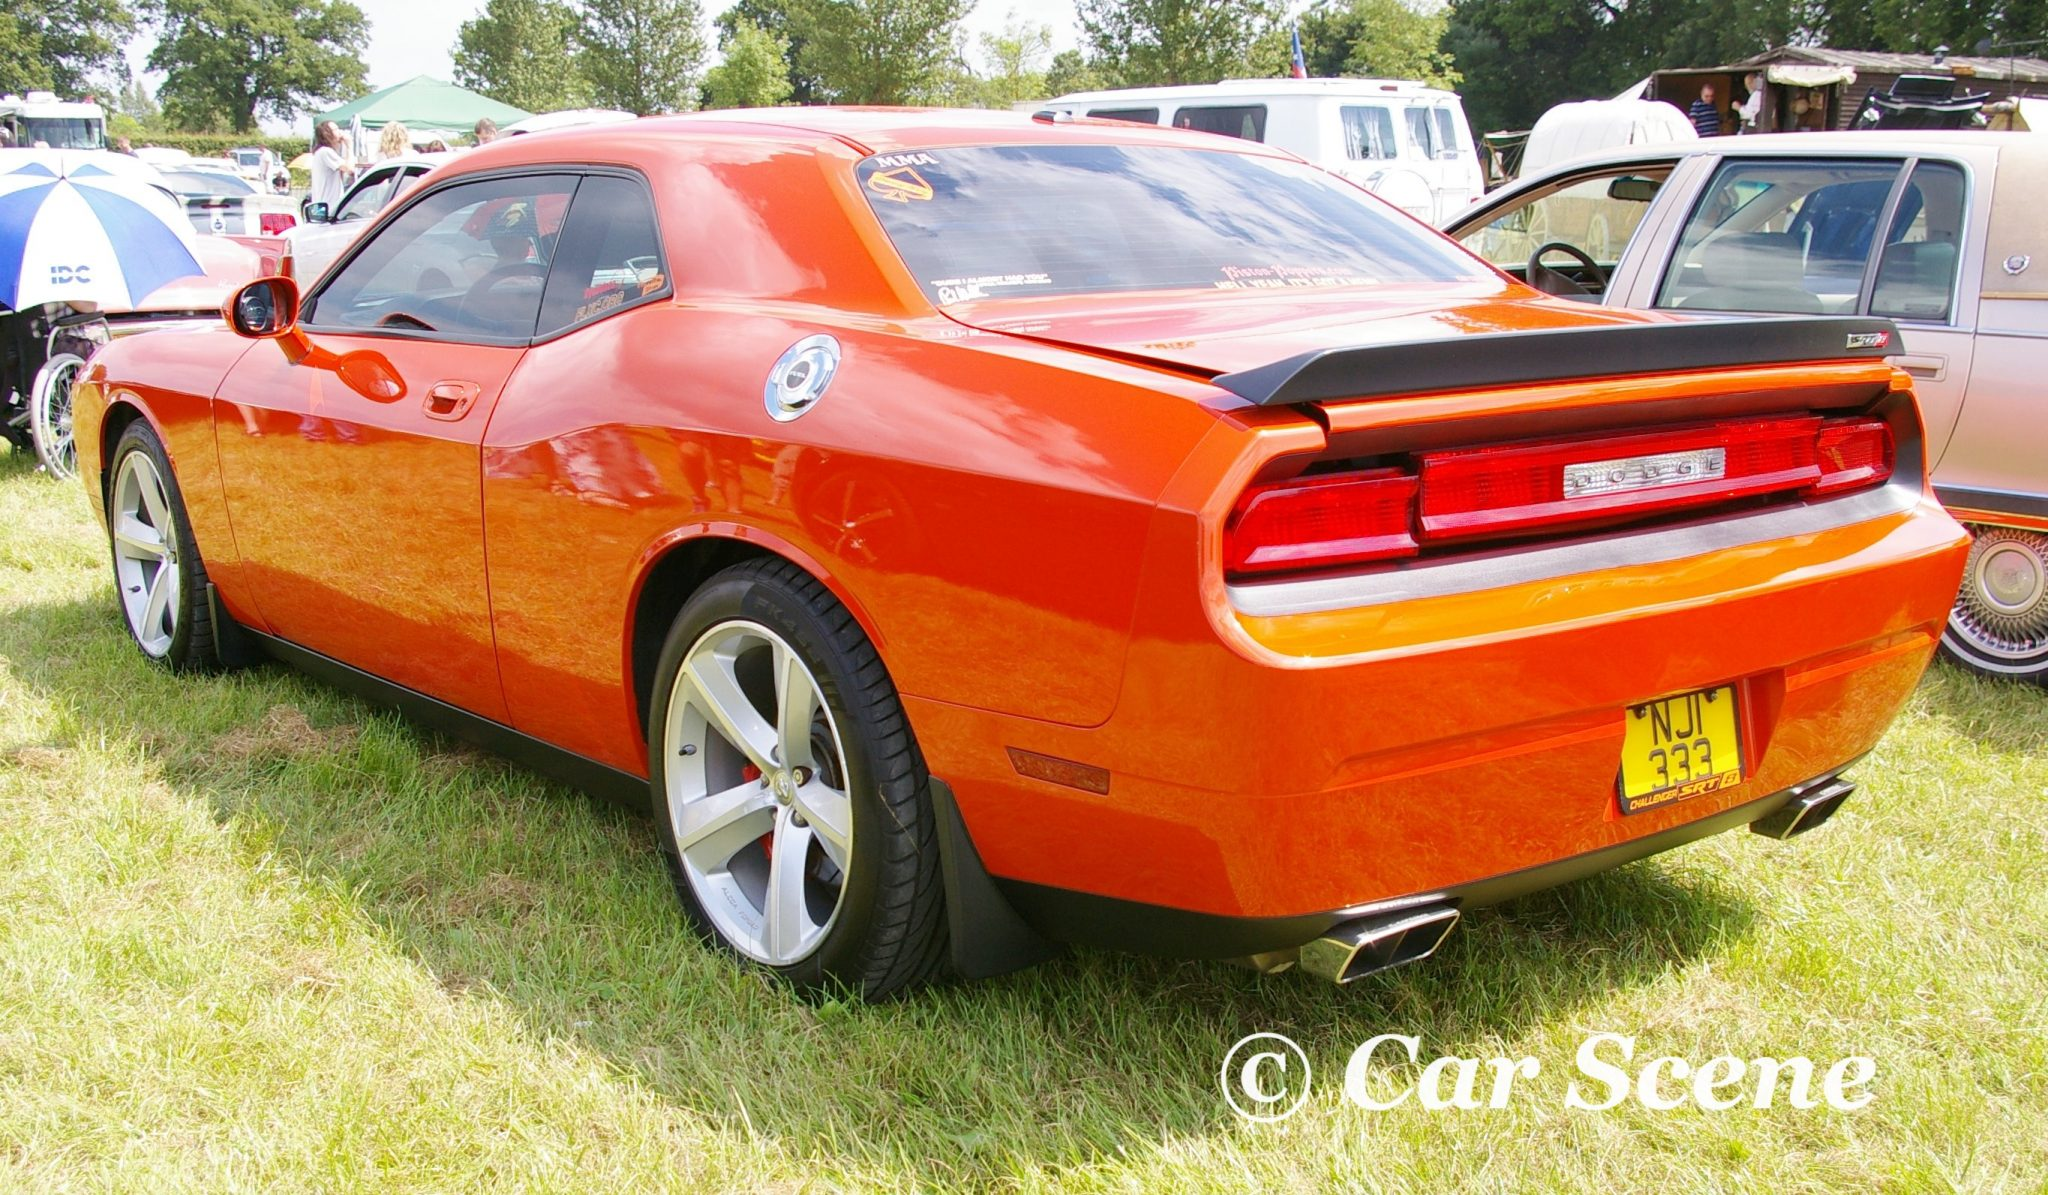 2008 Dodge Challenger SRT8 rear three quarters view